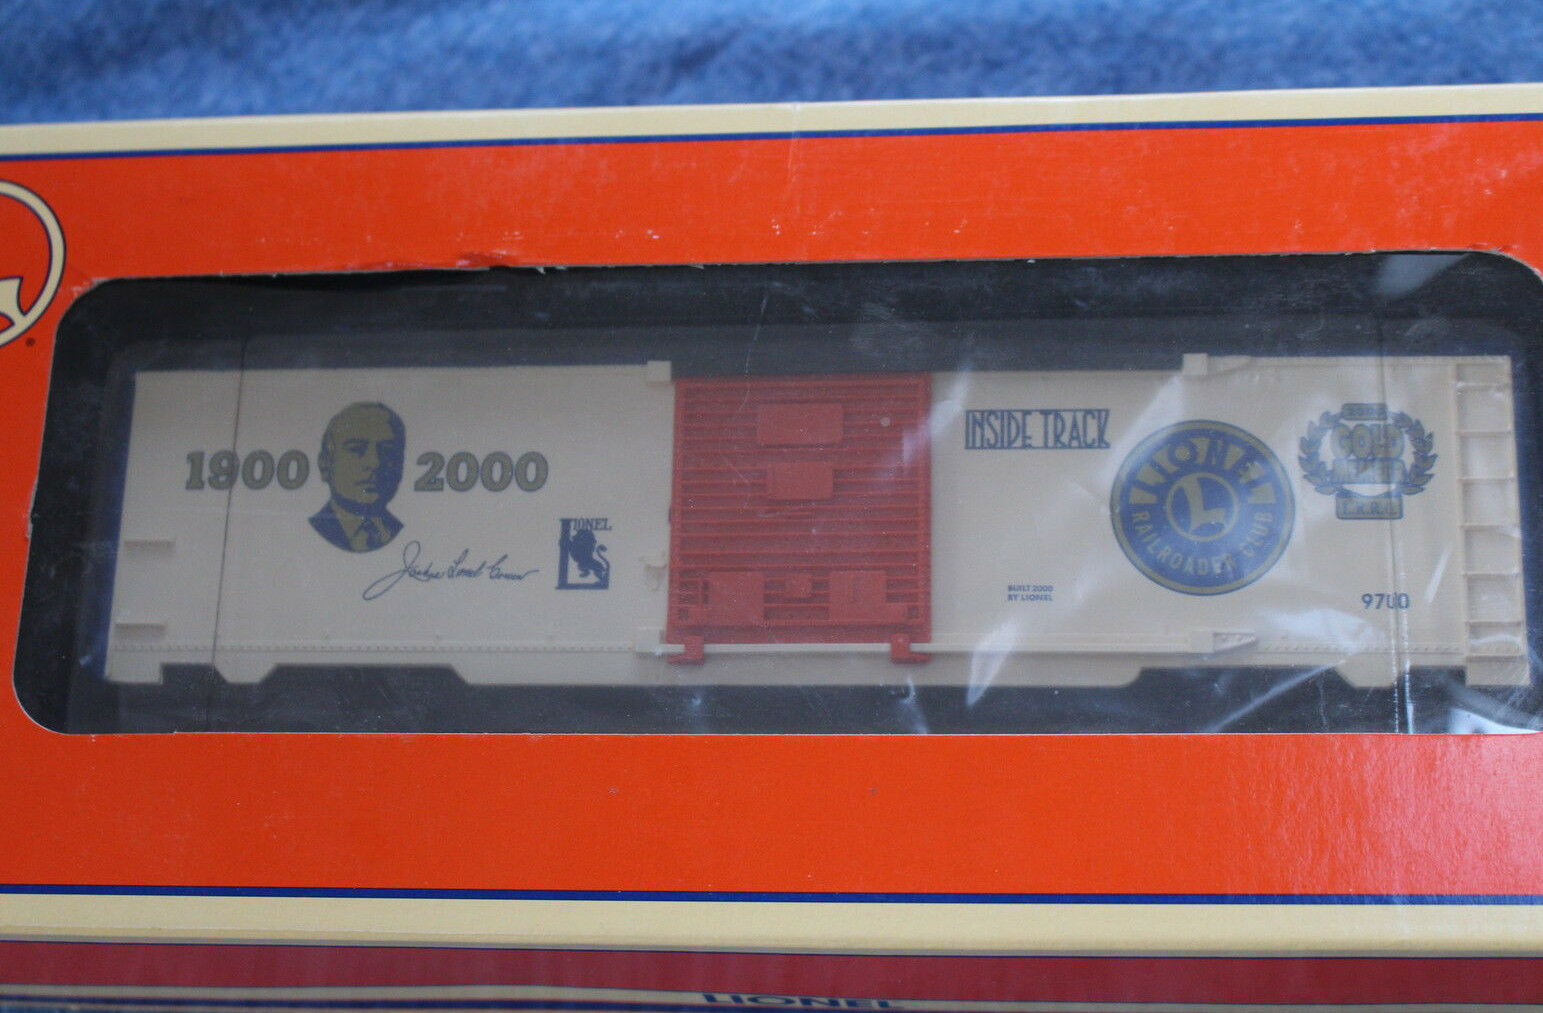 2000 lionel 6-19991 lionel railroader club Gold mitglied l2722 box - auto